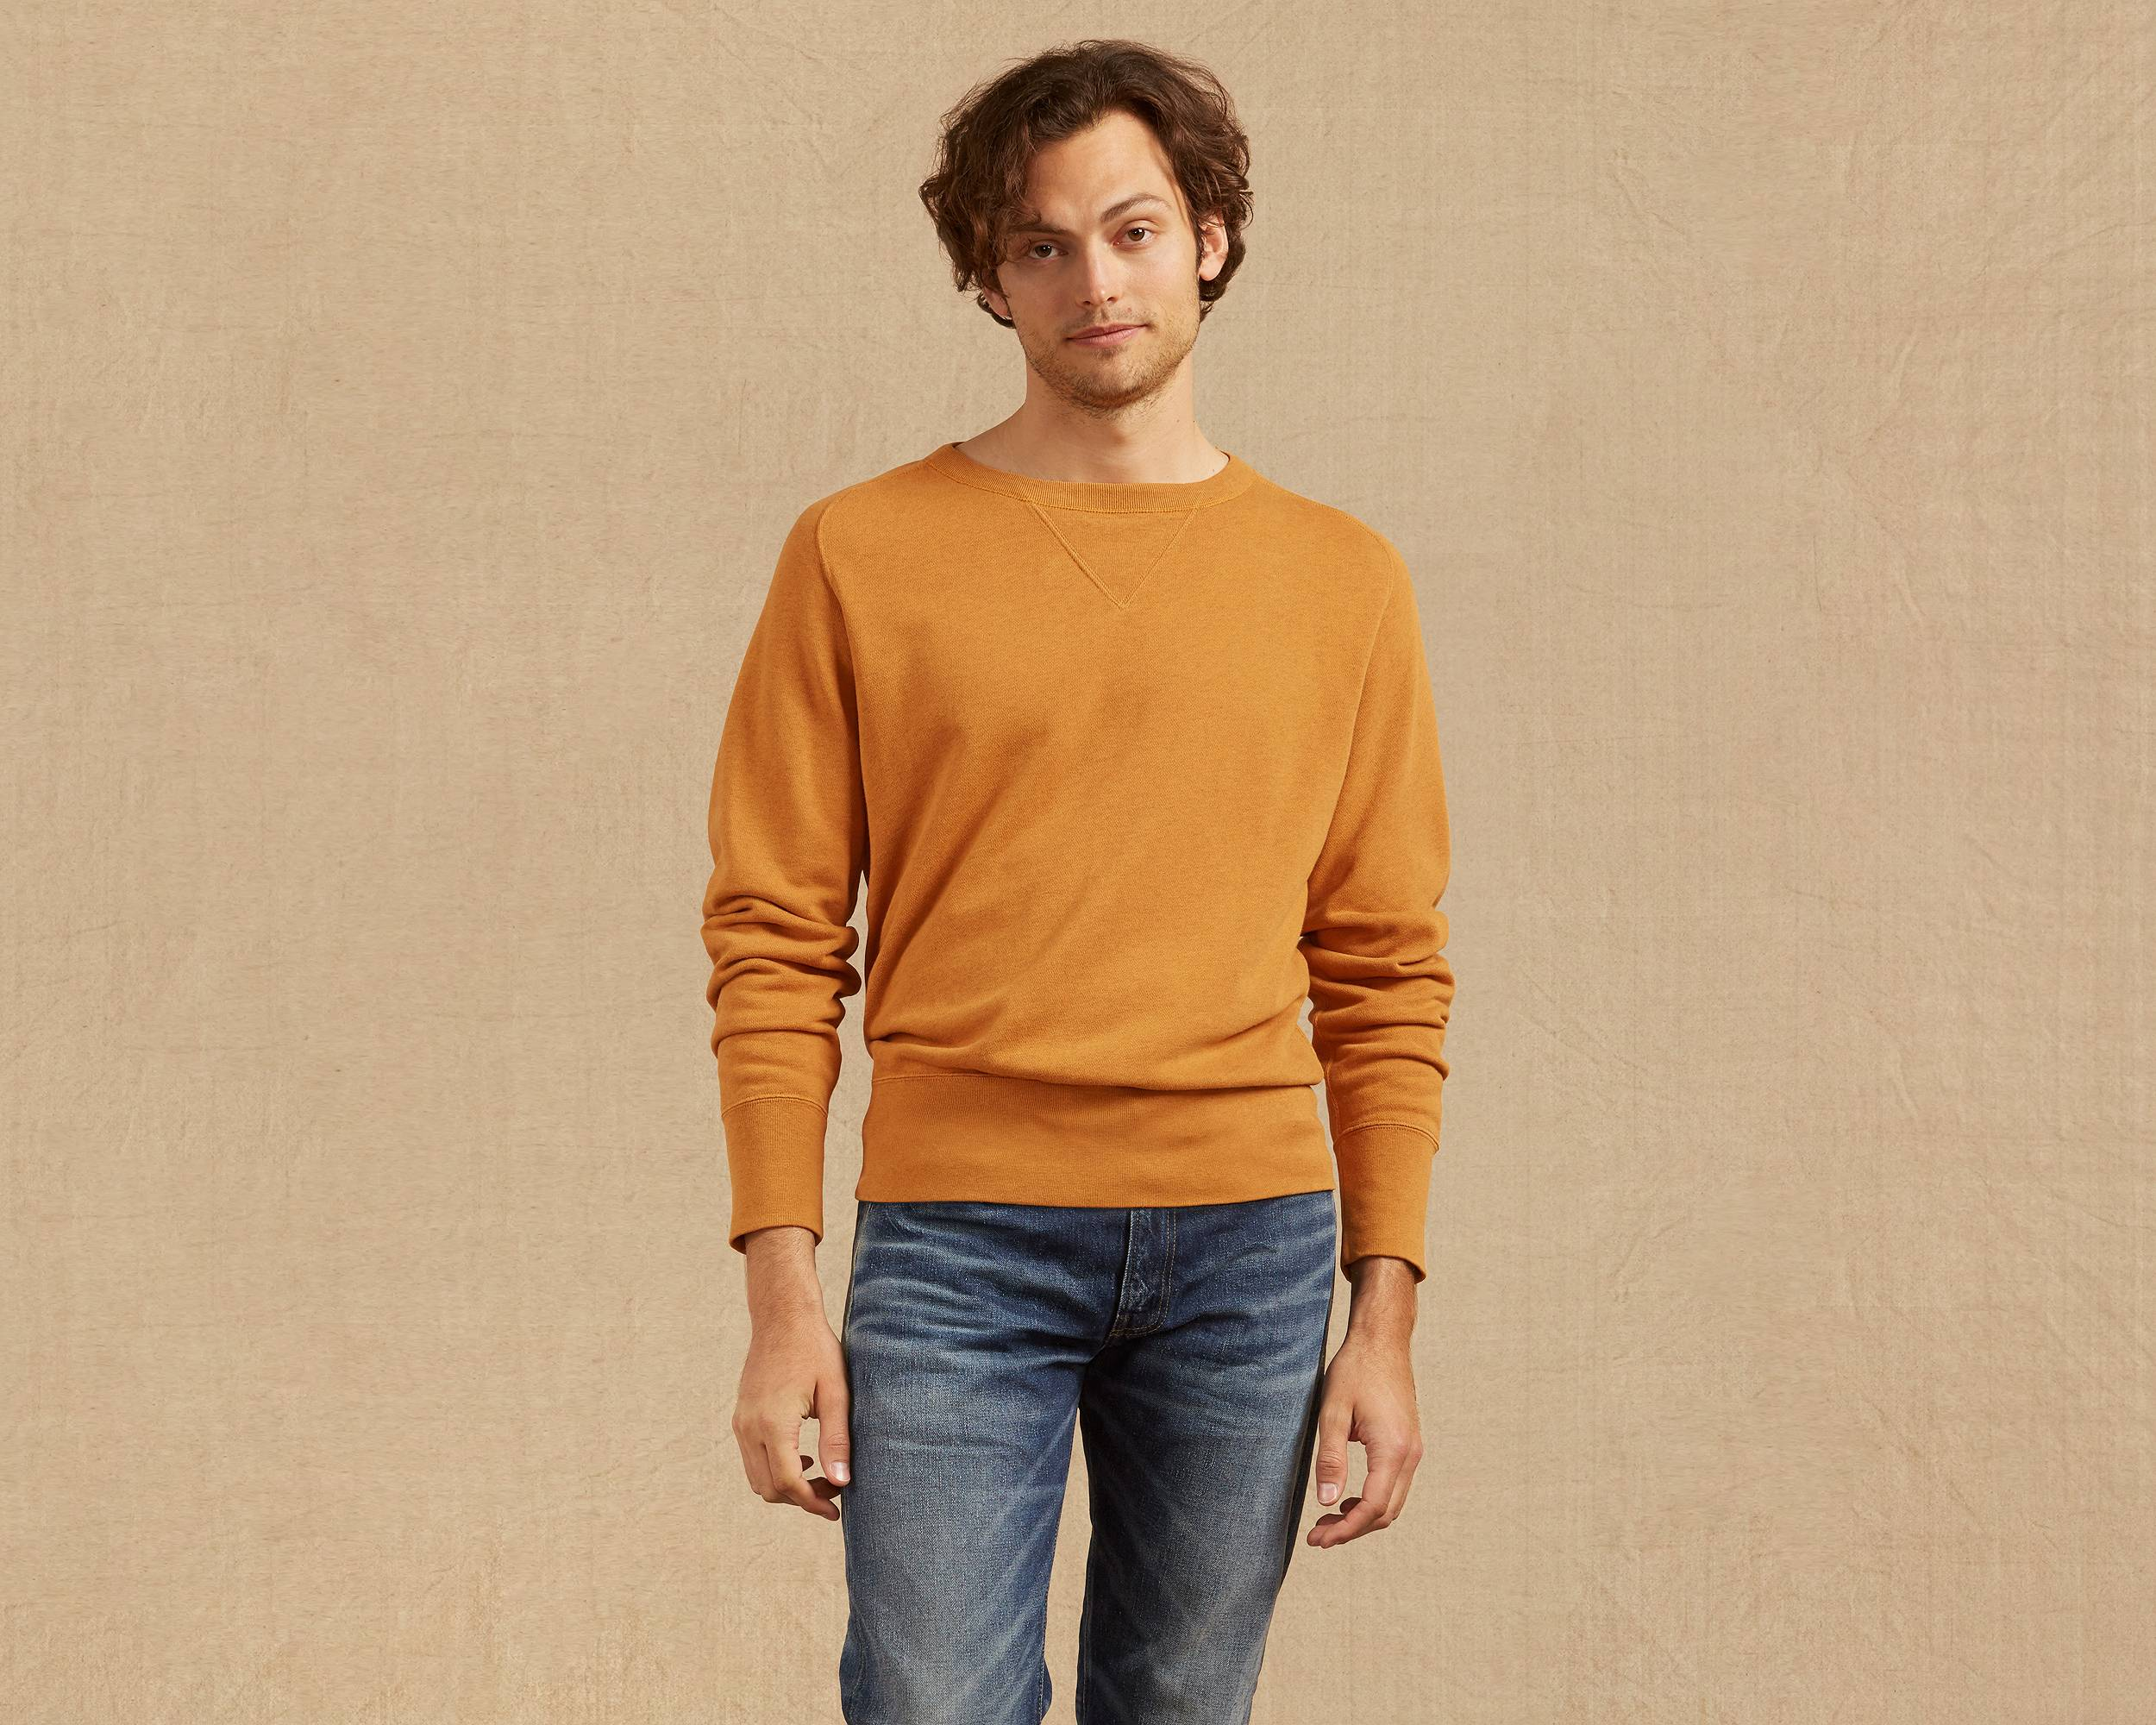 Men's Vintage Style Sweaters – 1920s to 1960s 1930s Bay Meadows Sweatshirt $195.00 AT vintagedancer.com